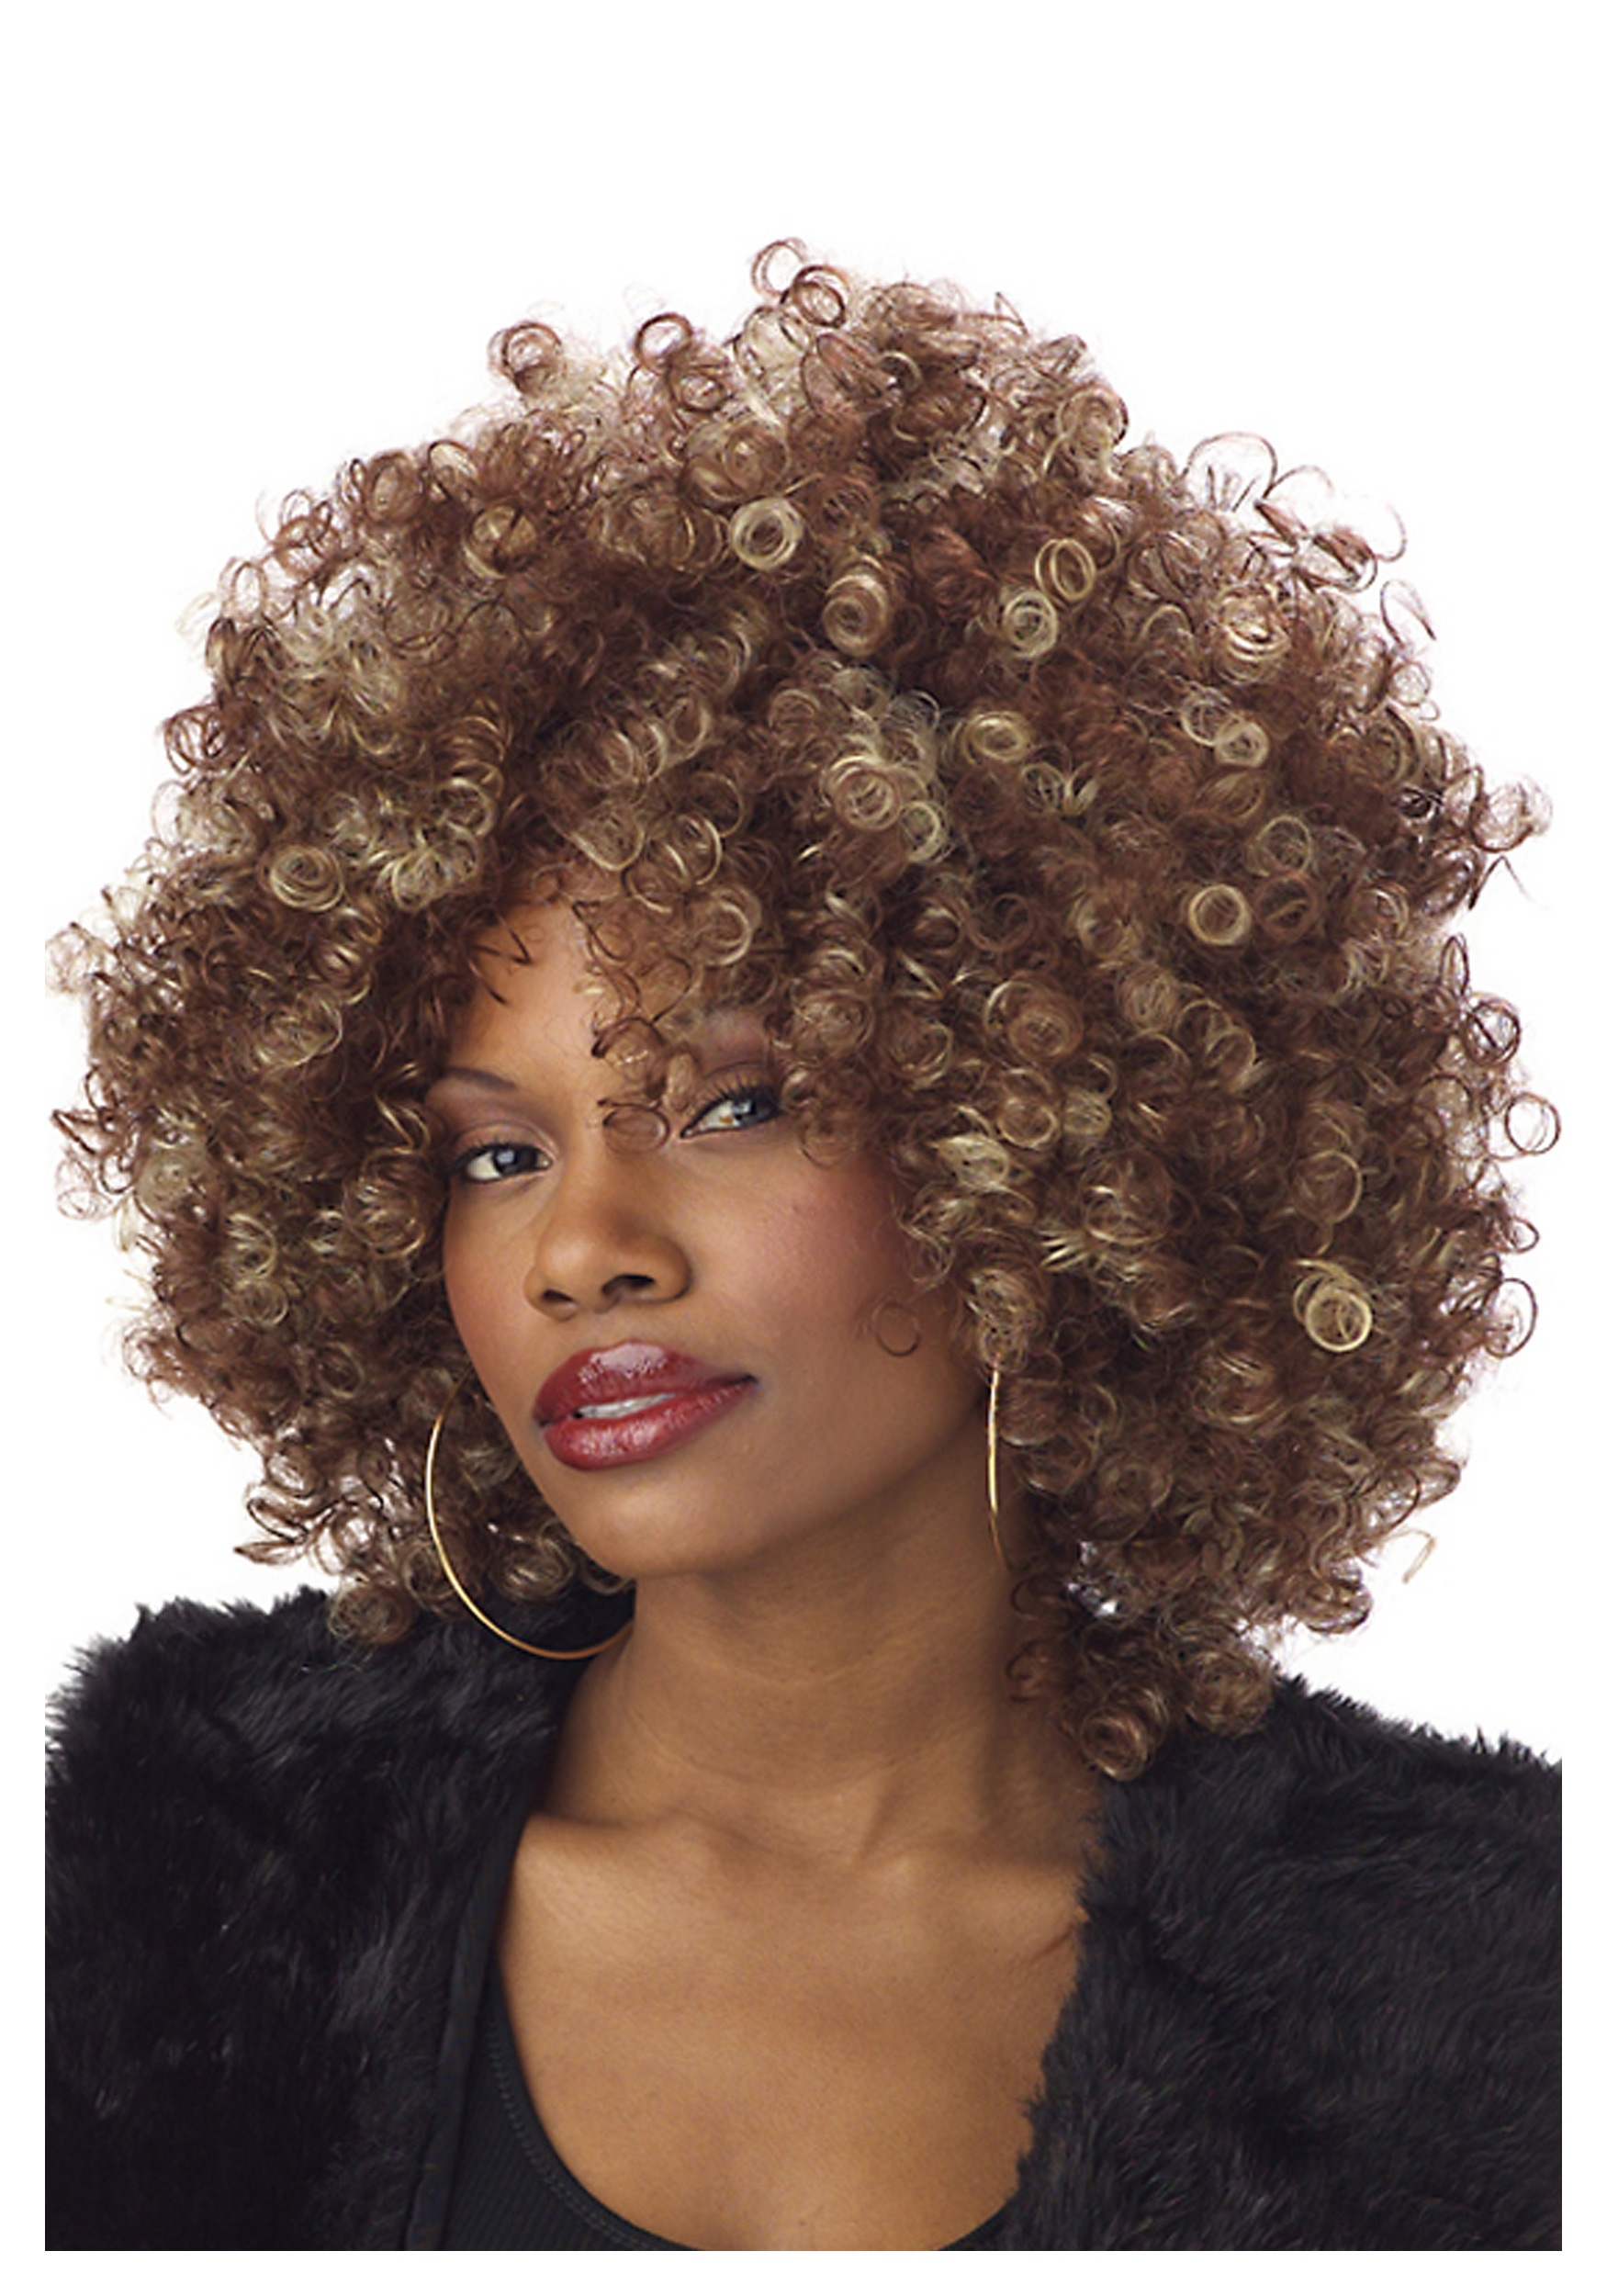 Fine Foxy Fro Wig For Adults 29ef06ed30